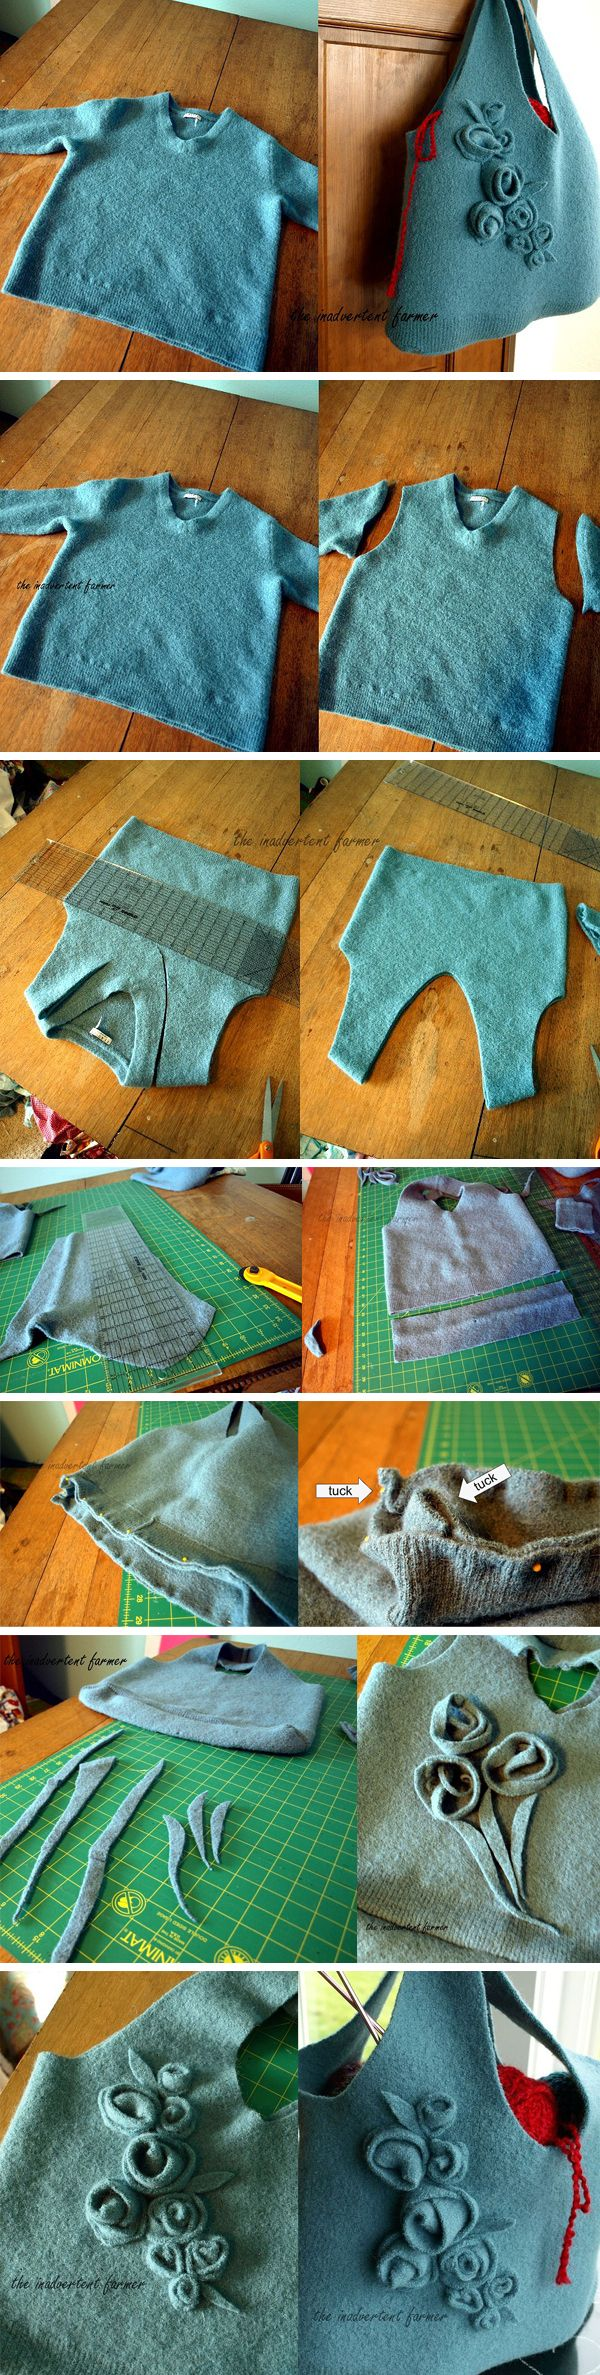 felted sweater bag tutorial